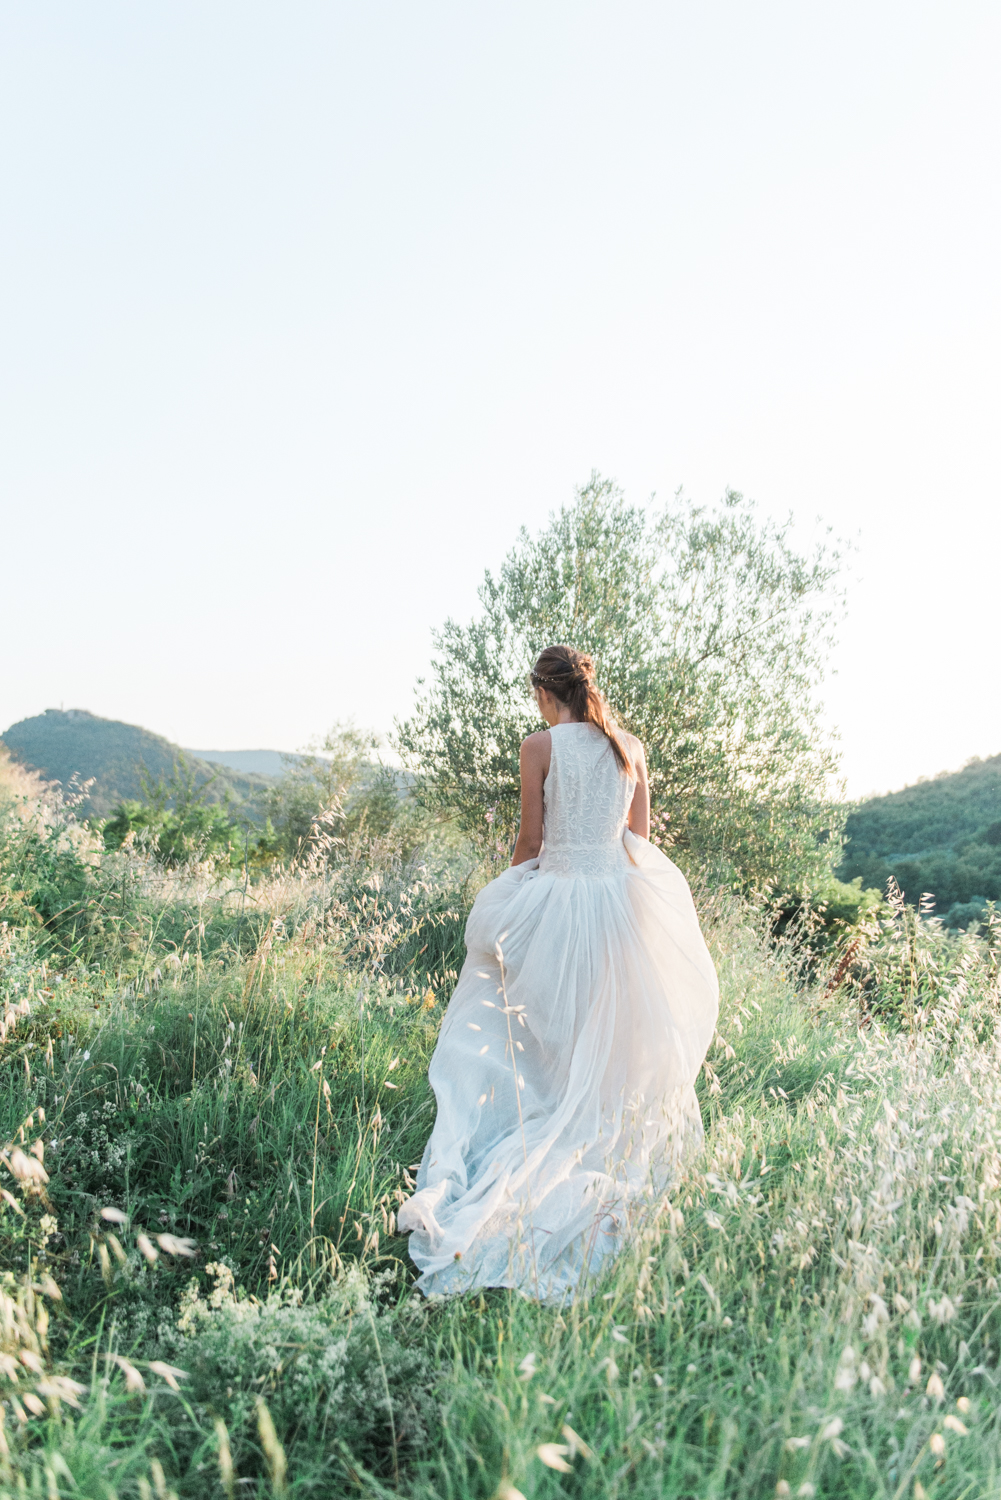 A bride in a Maria Louisa Rabell dress in a field on a hill in Italy